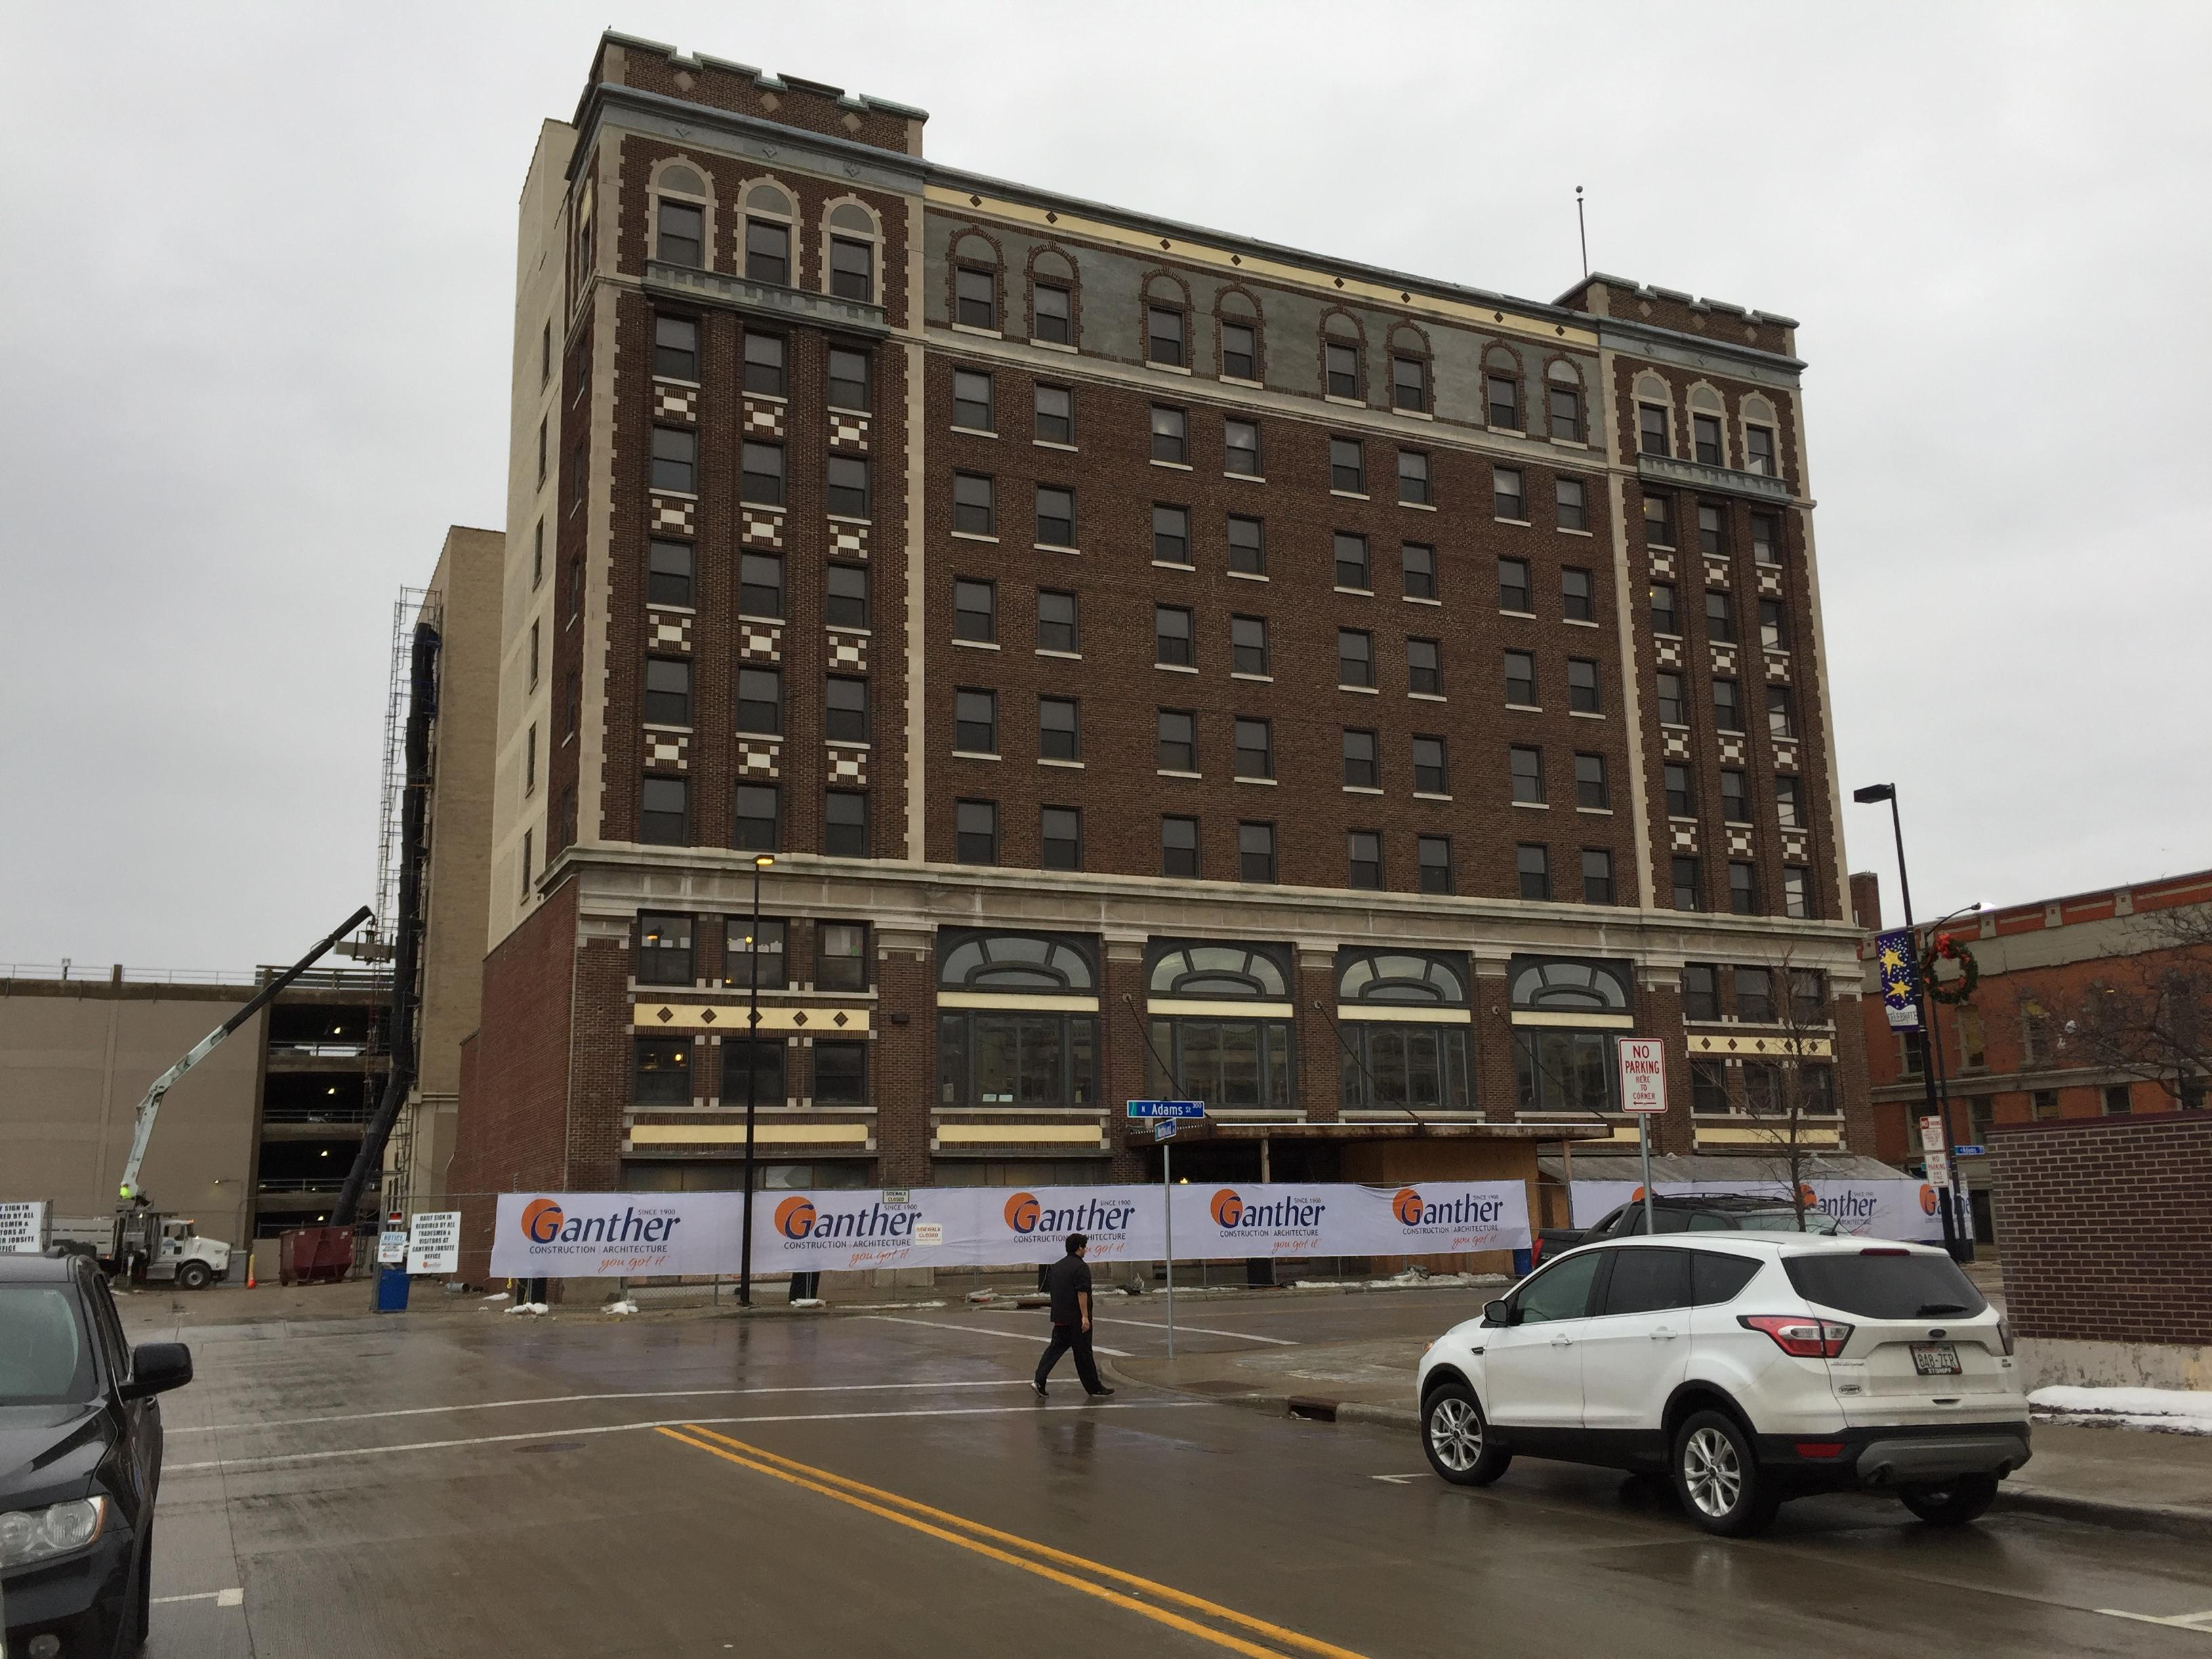 Hotel Northland in Green Bay on January 11, 2018. (Photo credit: WLUK)